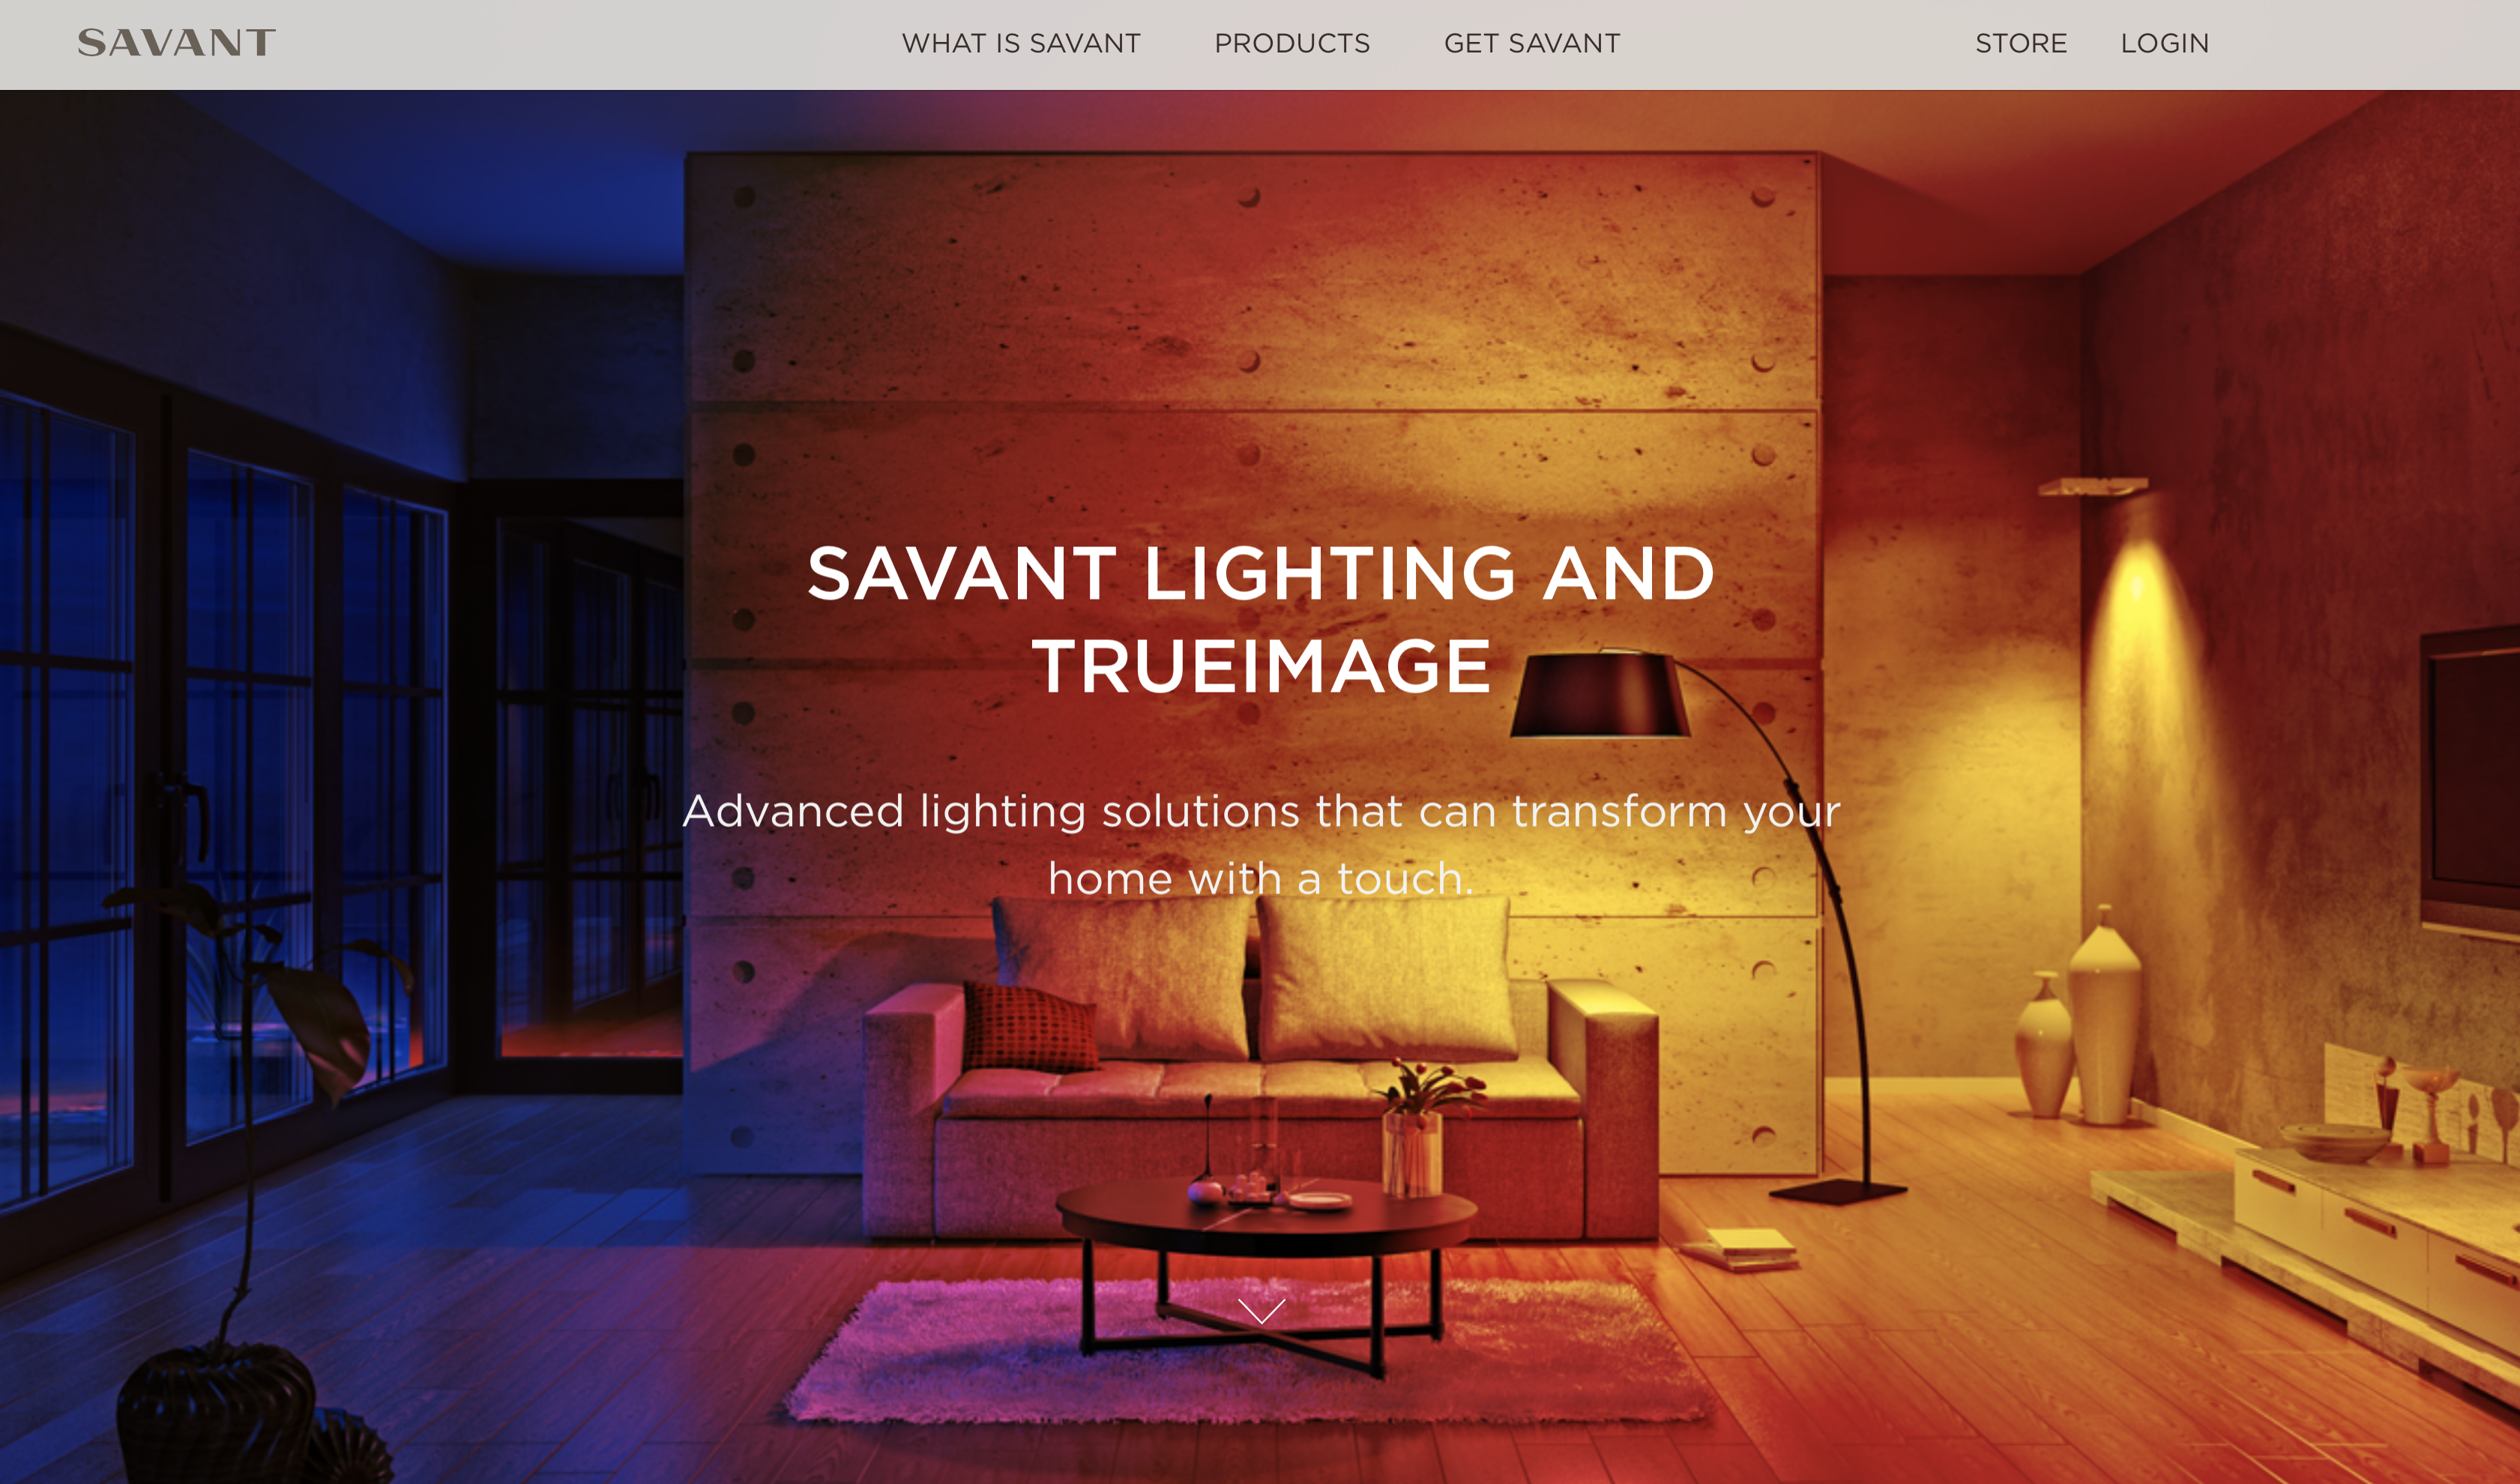 savant lighting and trueimage - advanced lighting solutions that can transform your home with a touch